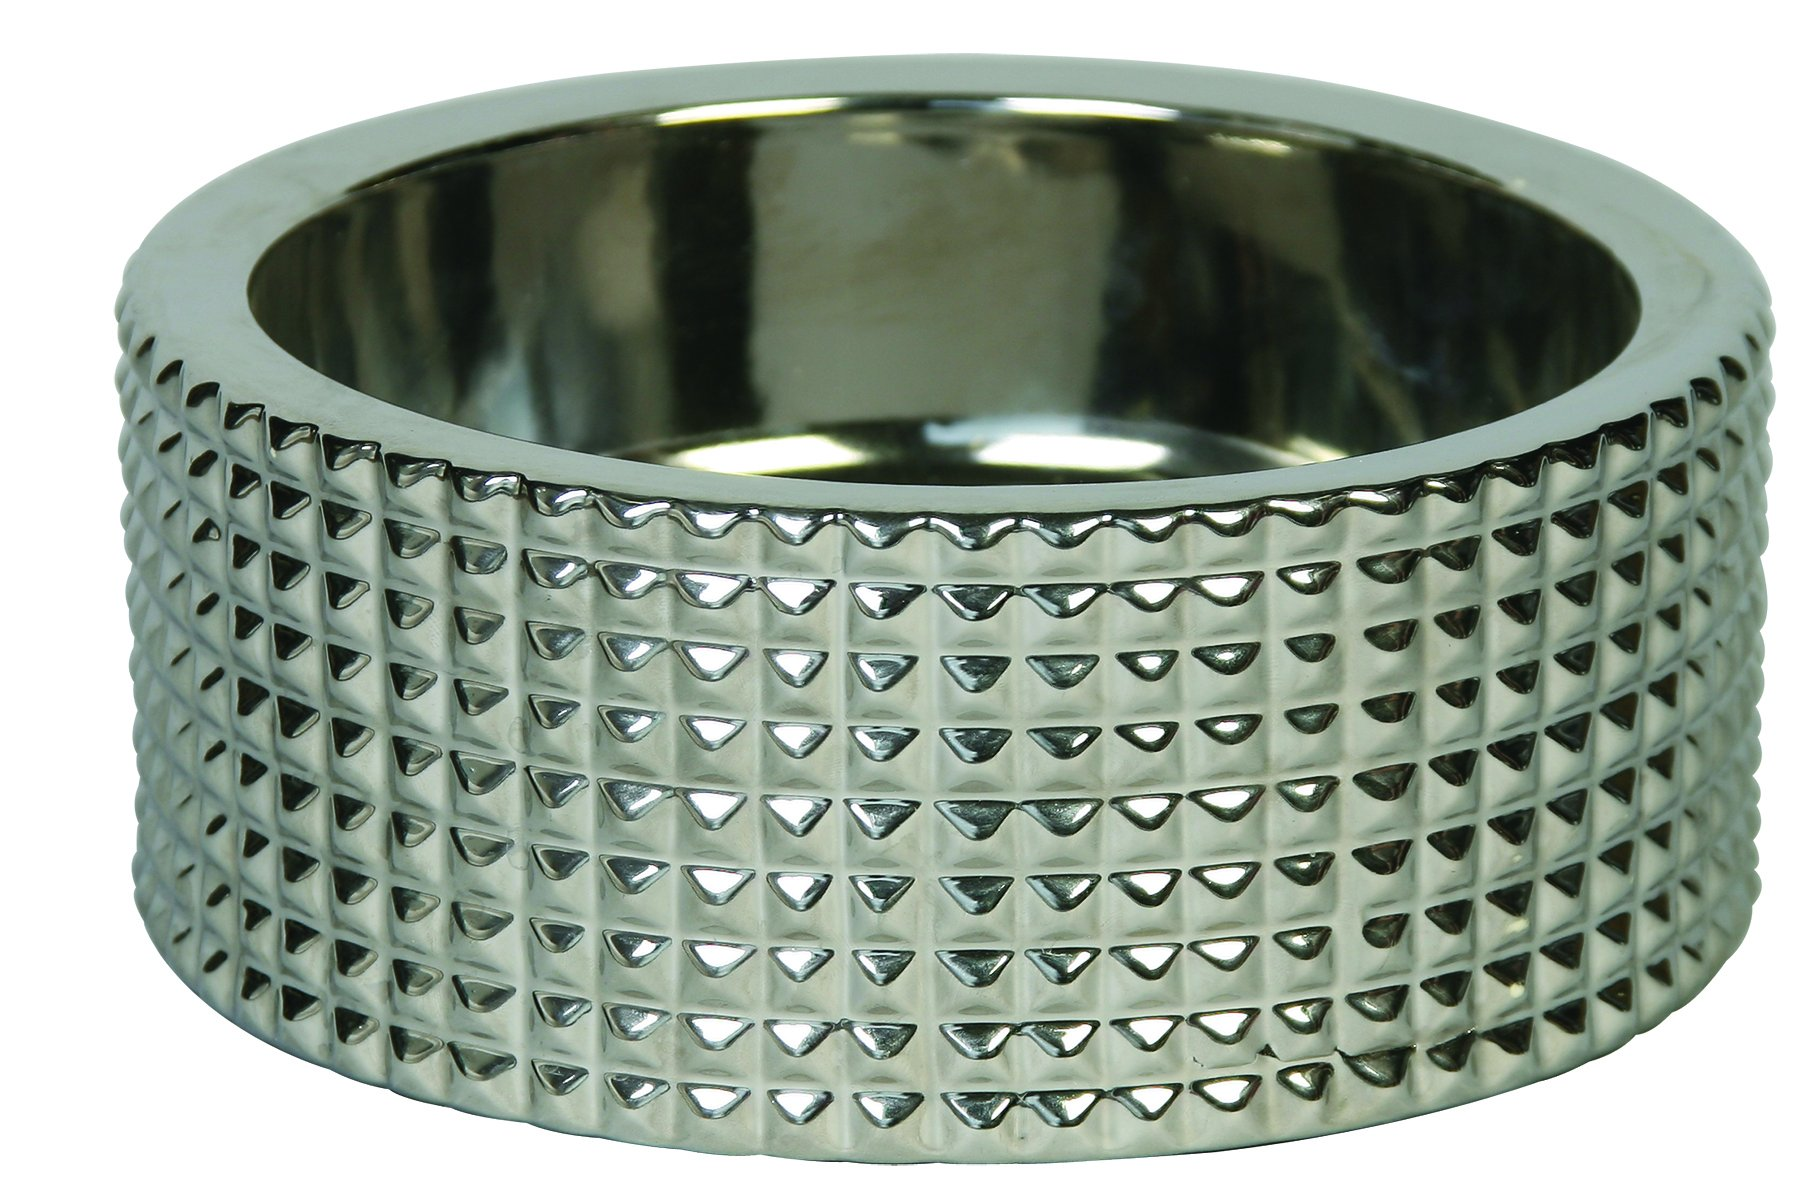 Unleashed Life Berlin Nickel Plated Porcelain Collection, X-Small